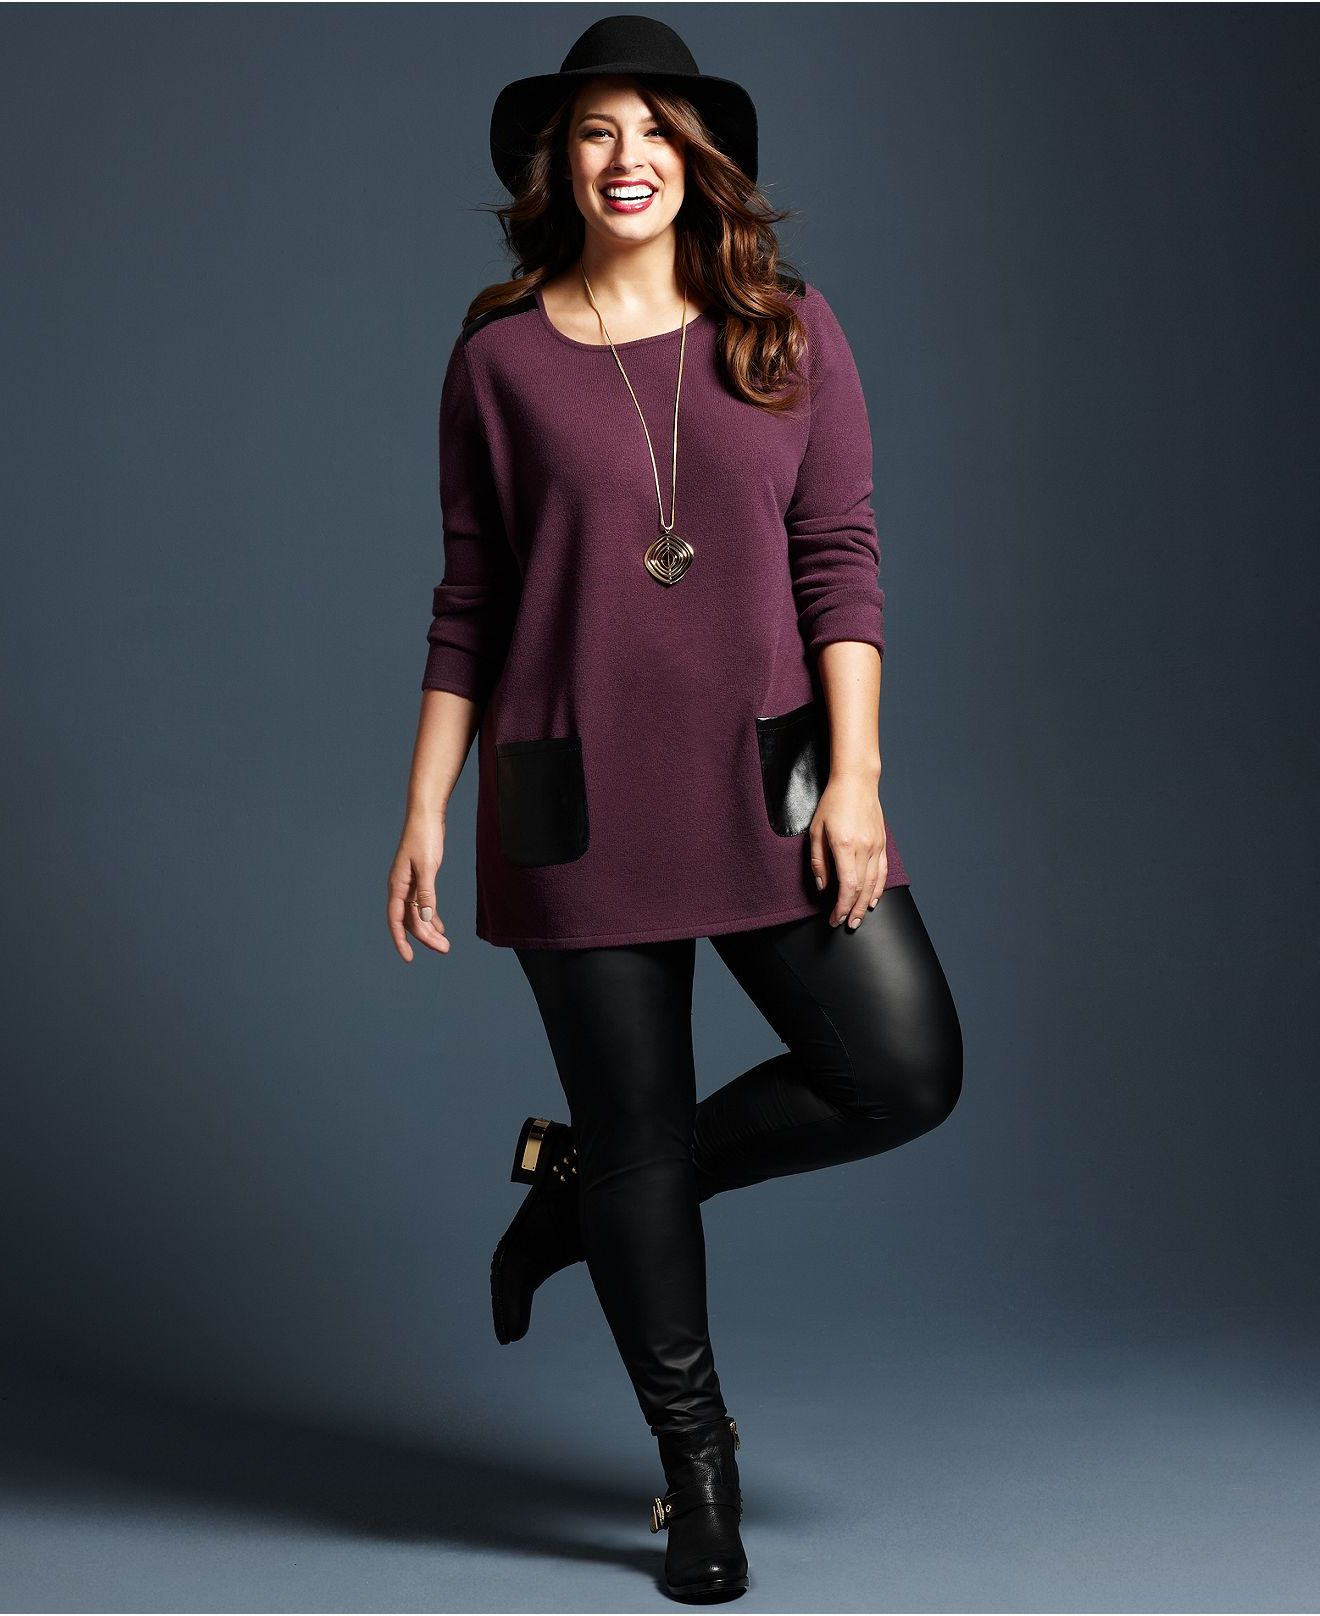 Cheap sweater dress plus size to wear with leggings